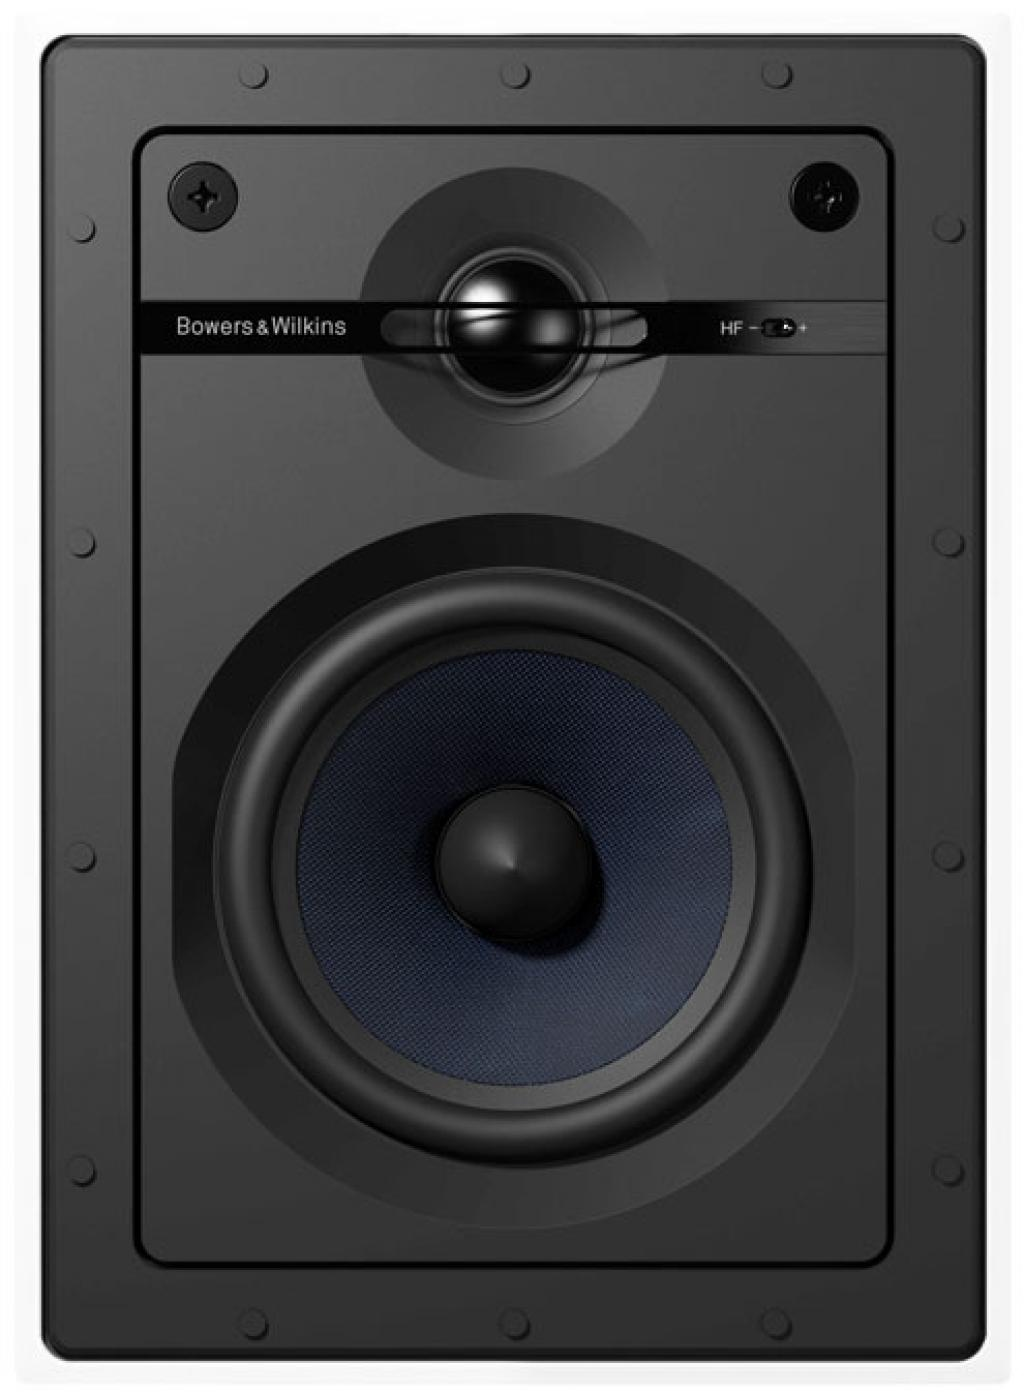 Boxe Bowers Wilkins CWM652